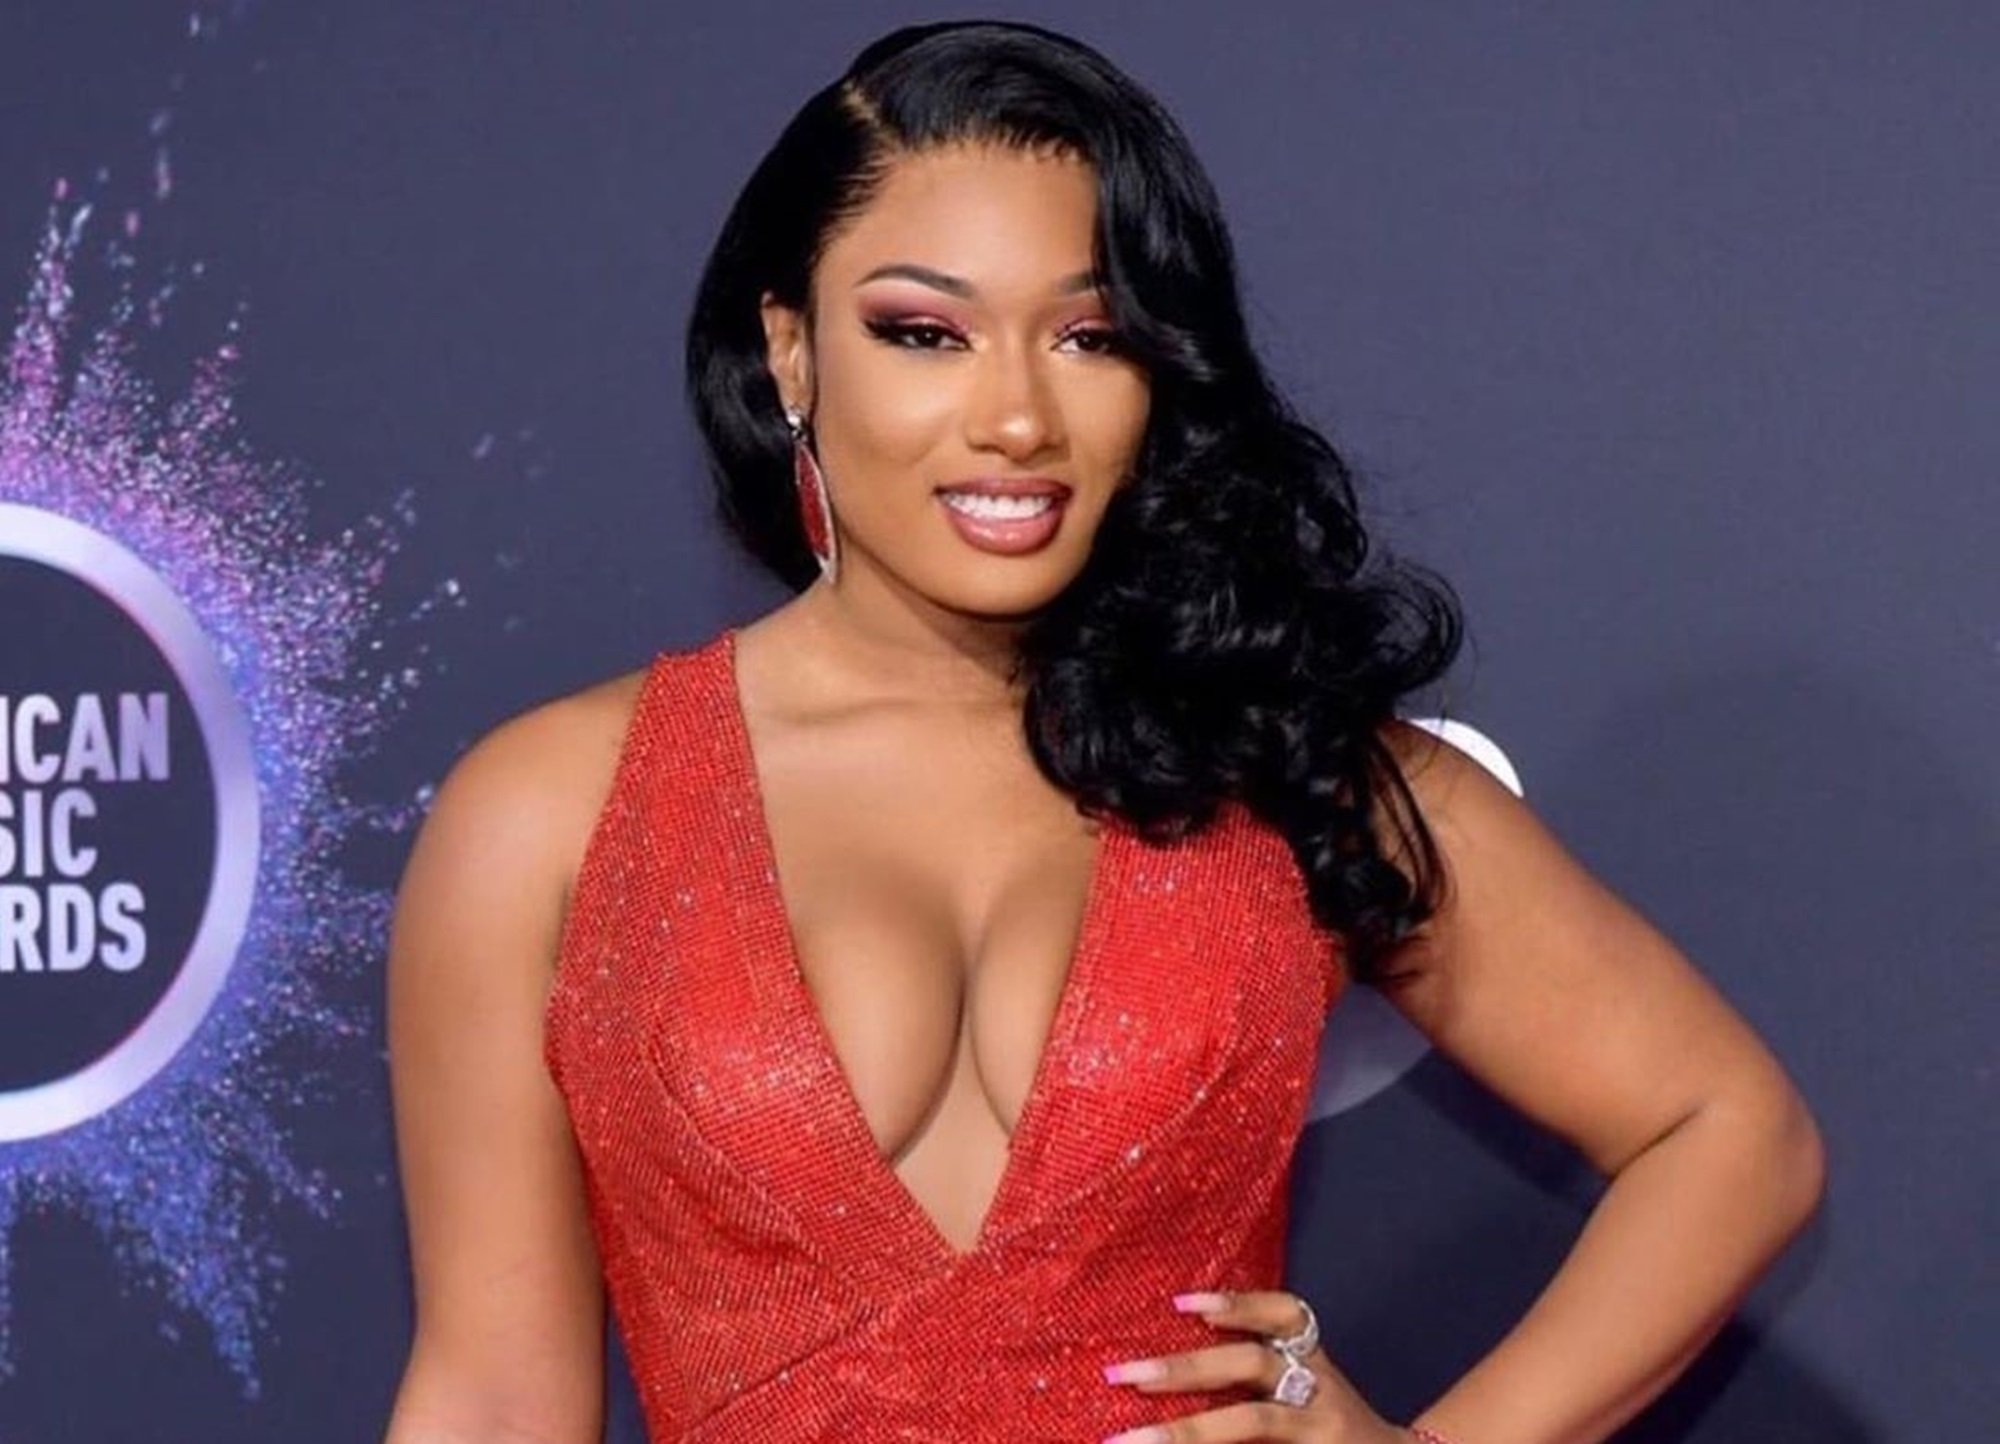 Megan Thee Stallion Explains Why She S Still In College Despite Her Successful Rap Career Celebrity Insider